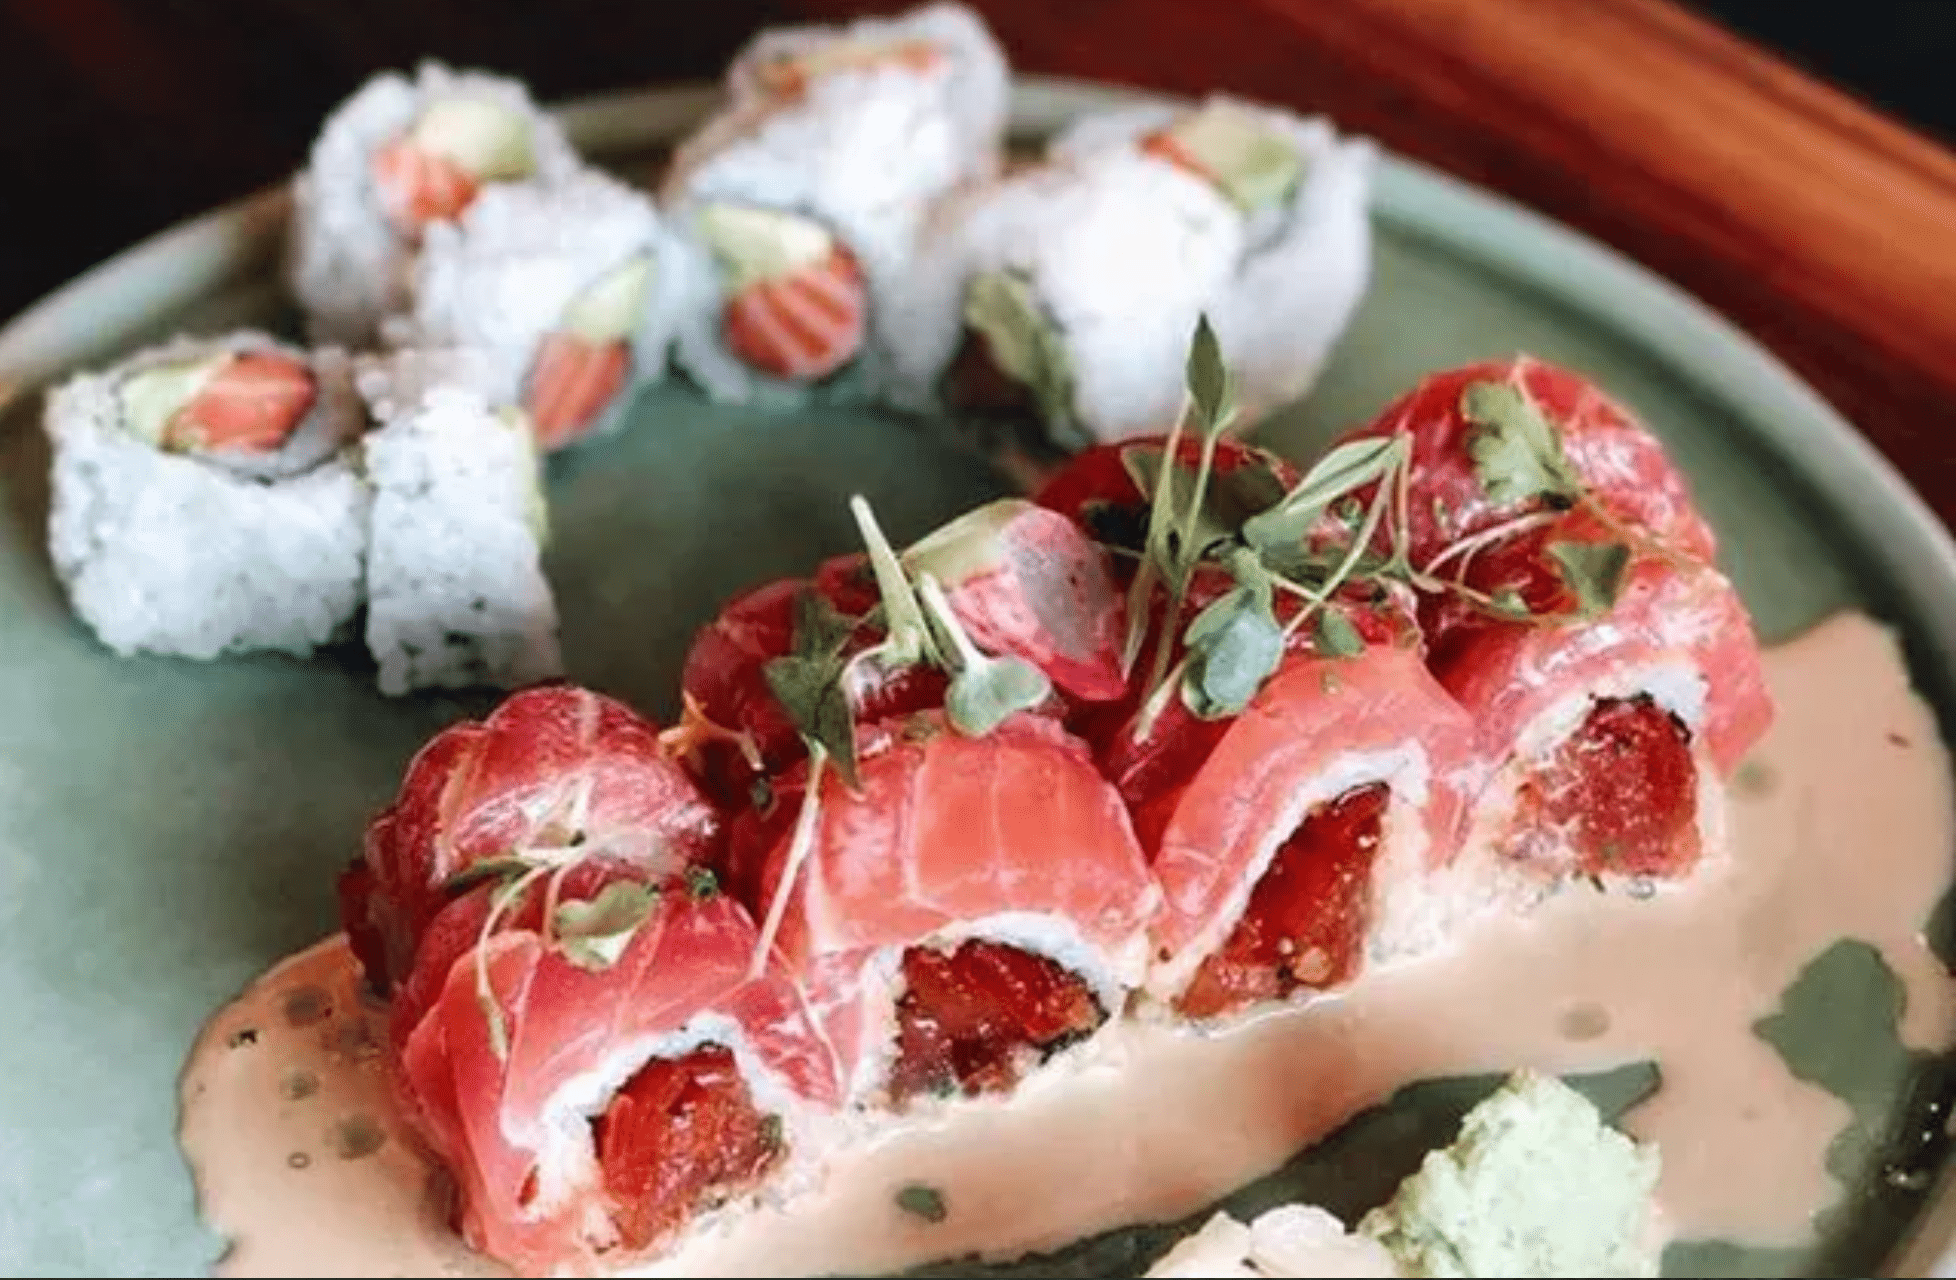 Sushi Mon Raleigh, best sushi in Raleigh, Sushi Mon best sushi Raleigh NC